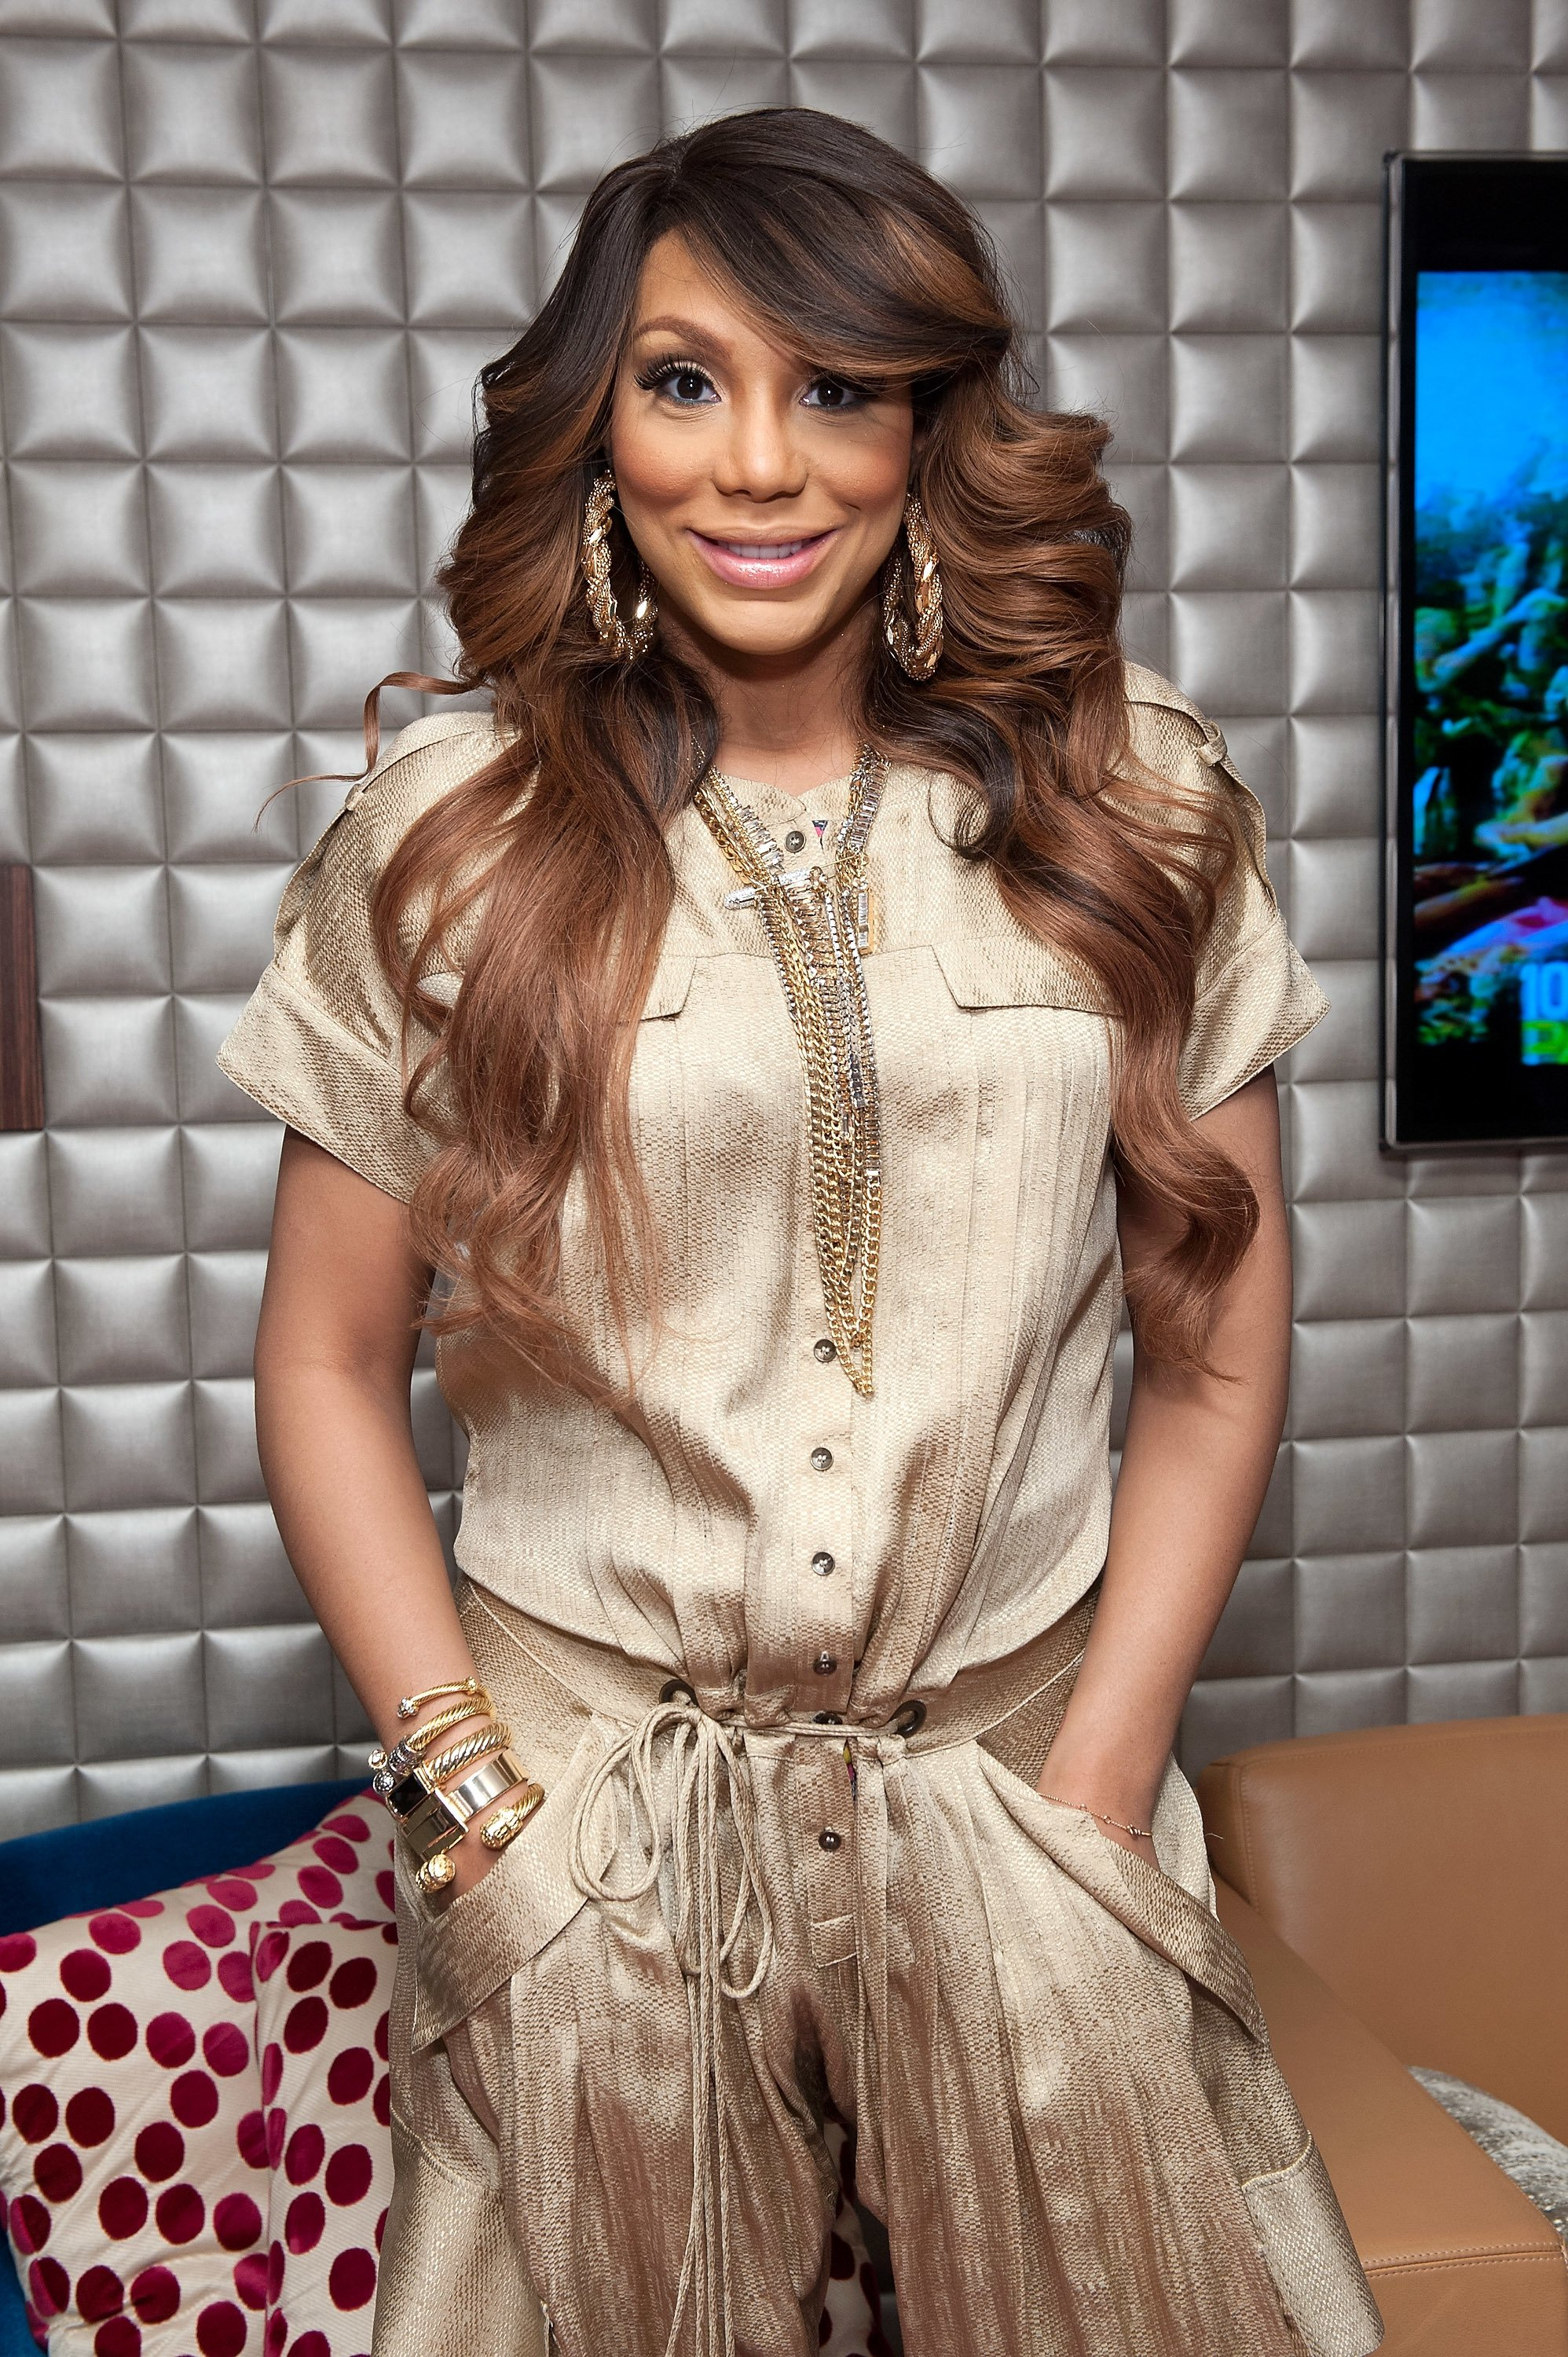 Tamar Braxton visits BET's '106 & Park' at BET Studios on February 13, 2013 | Photo: Getty Images